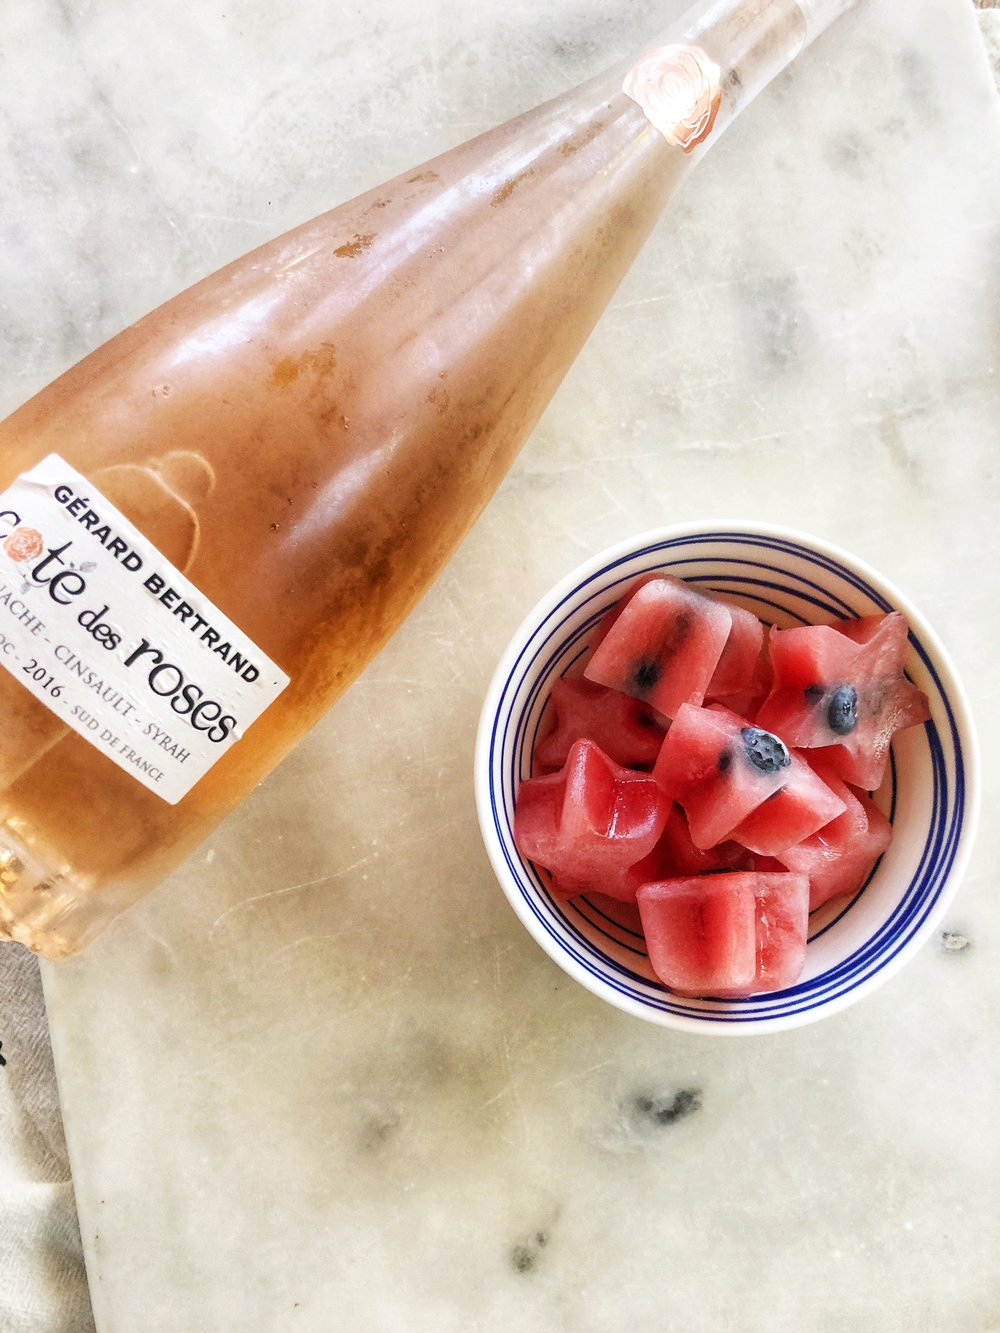 Living your best summer life sipping on Rose decorated with watermelon ice cubes.